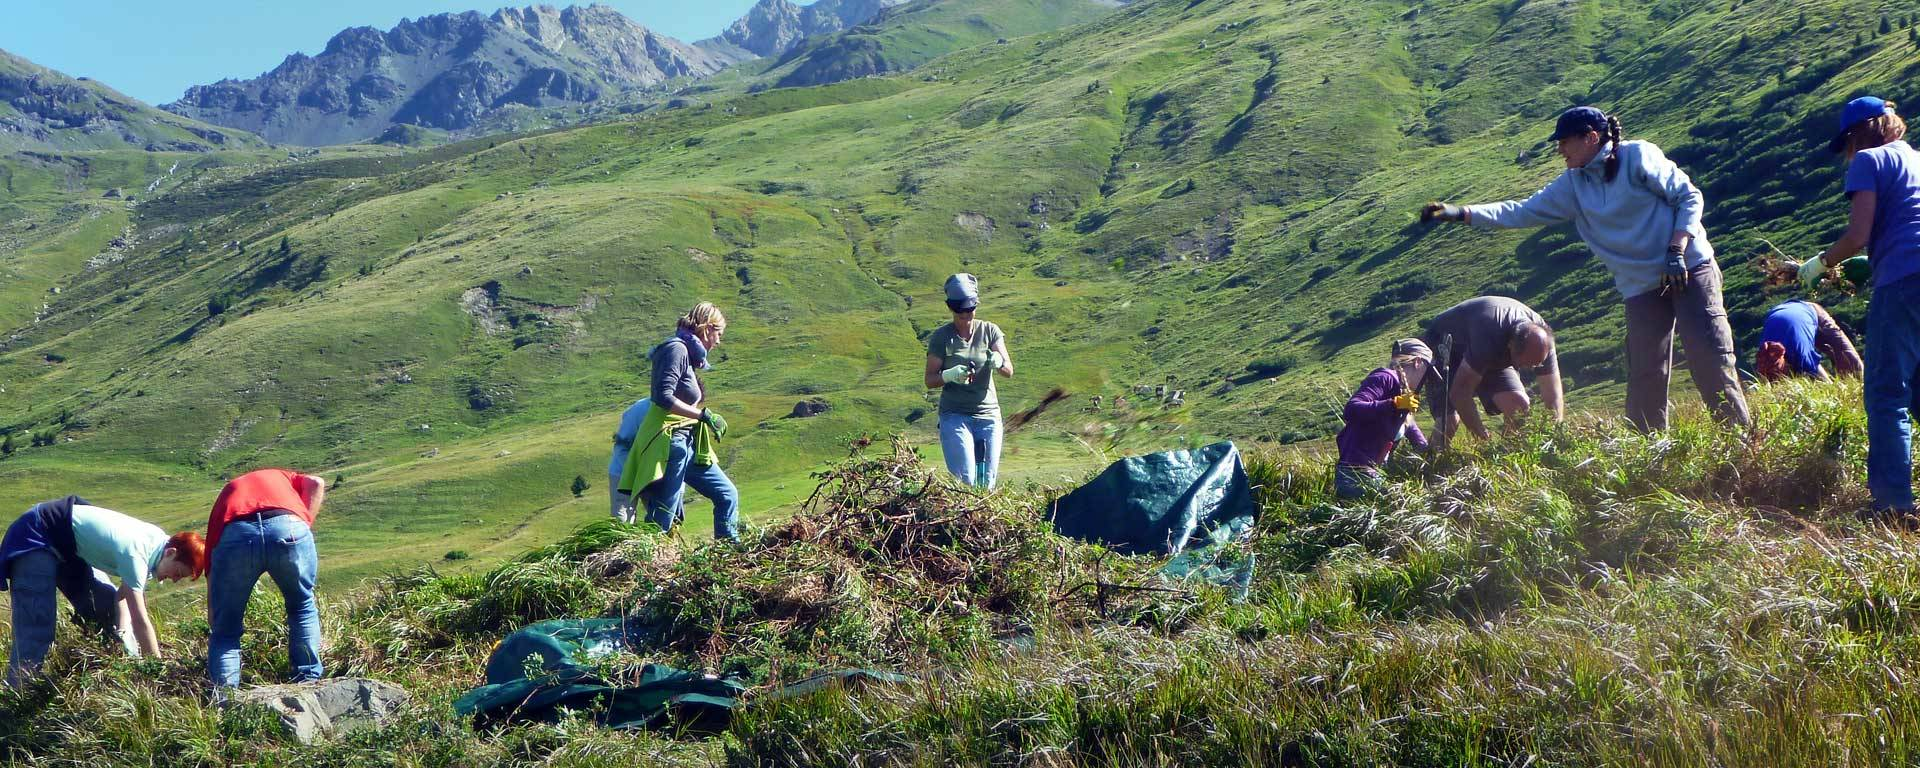 Volunteers working with gloves and shears in a field in Alp Flix © Monika Wernli